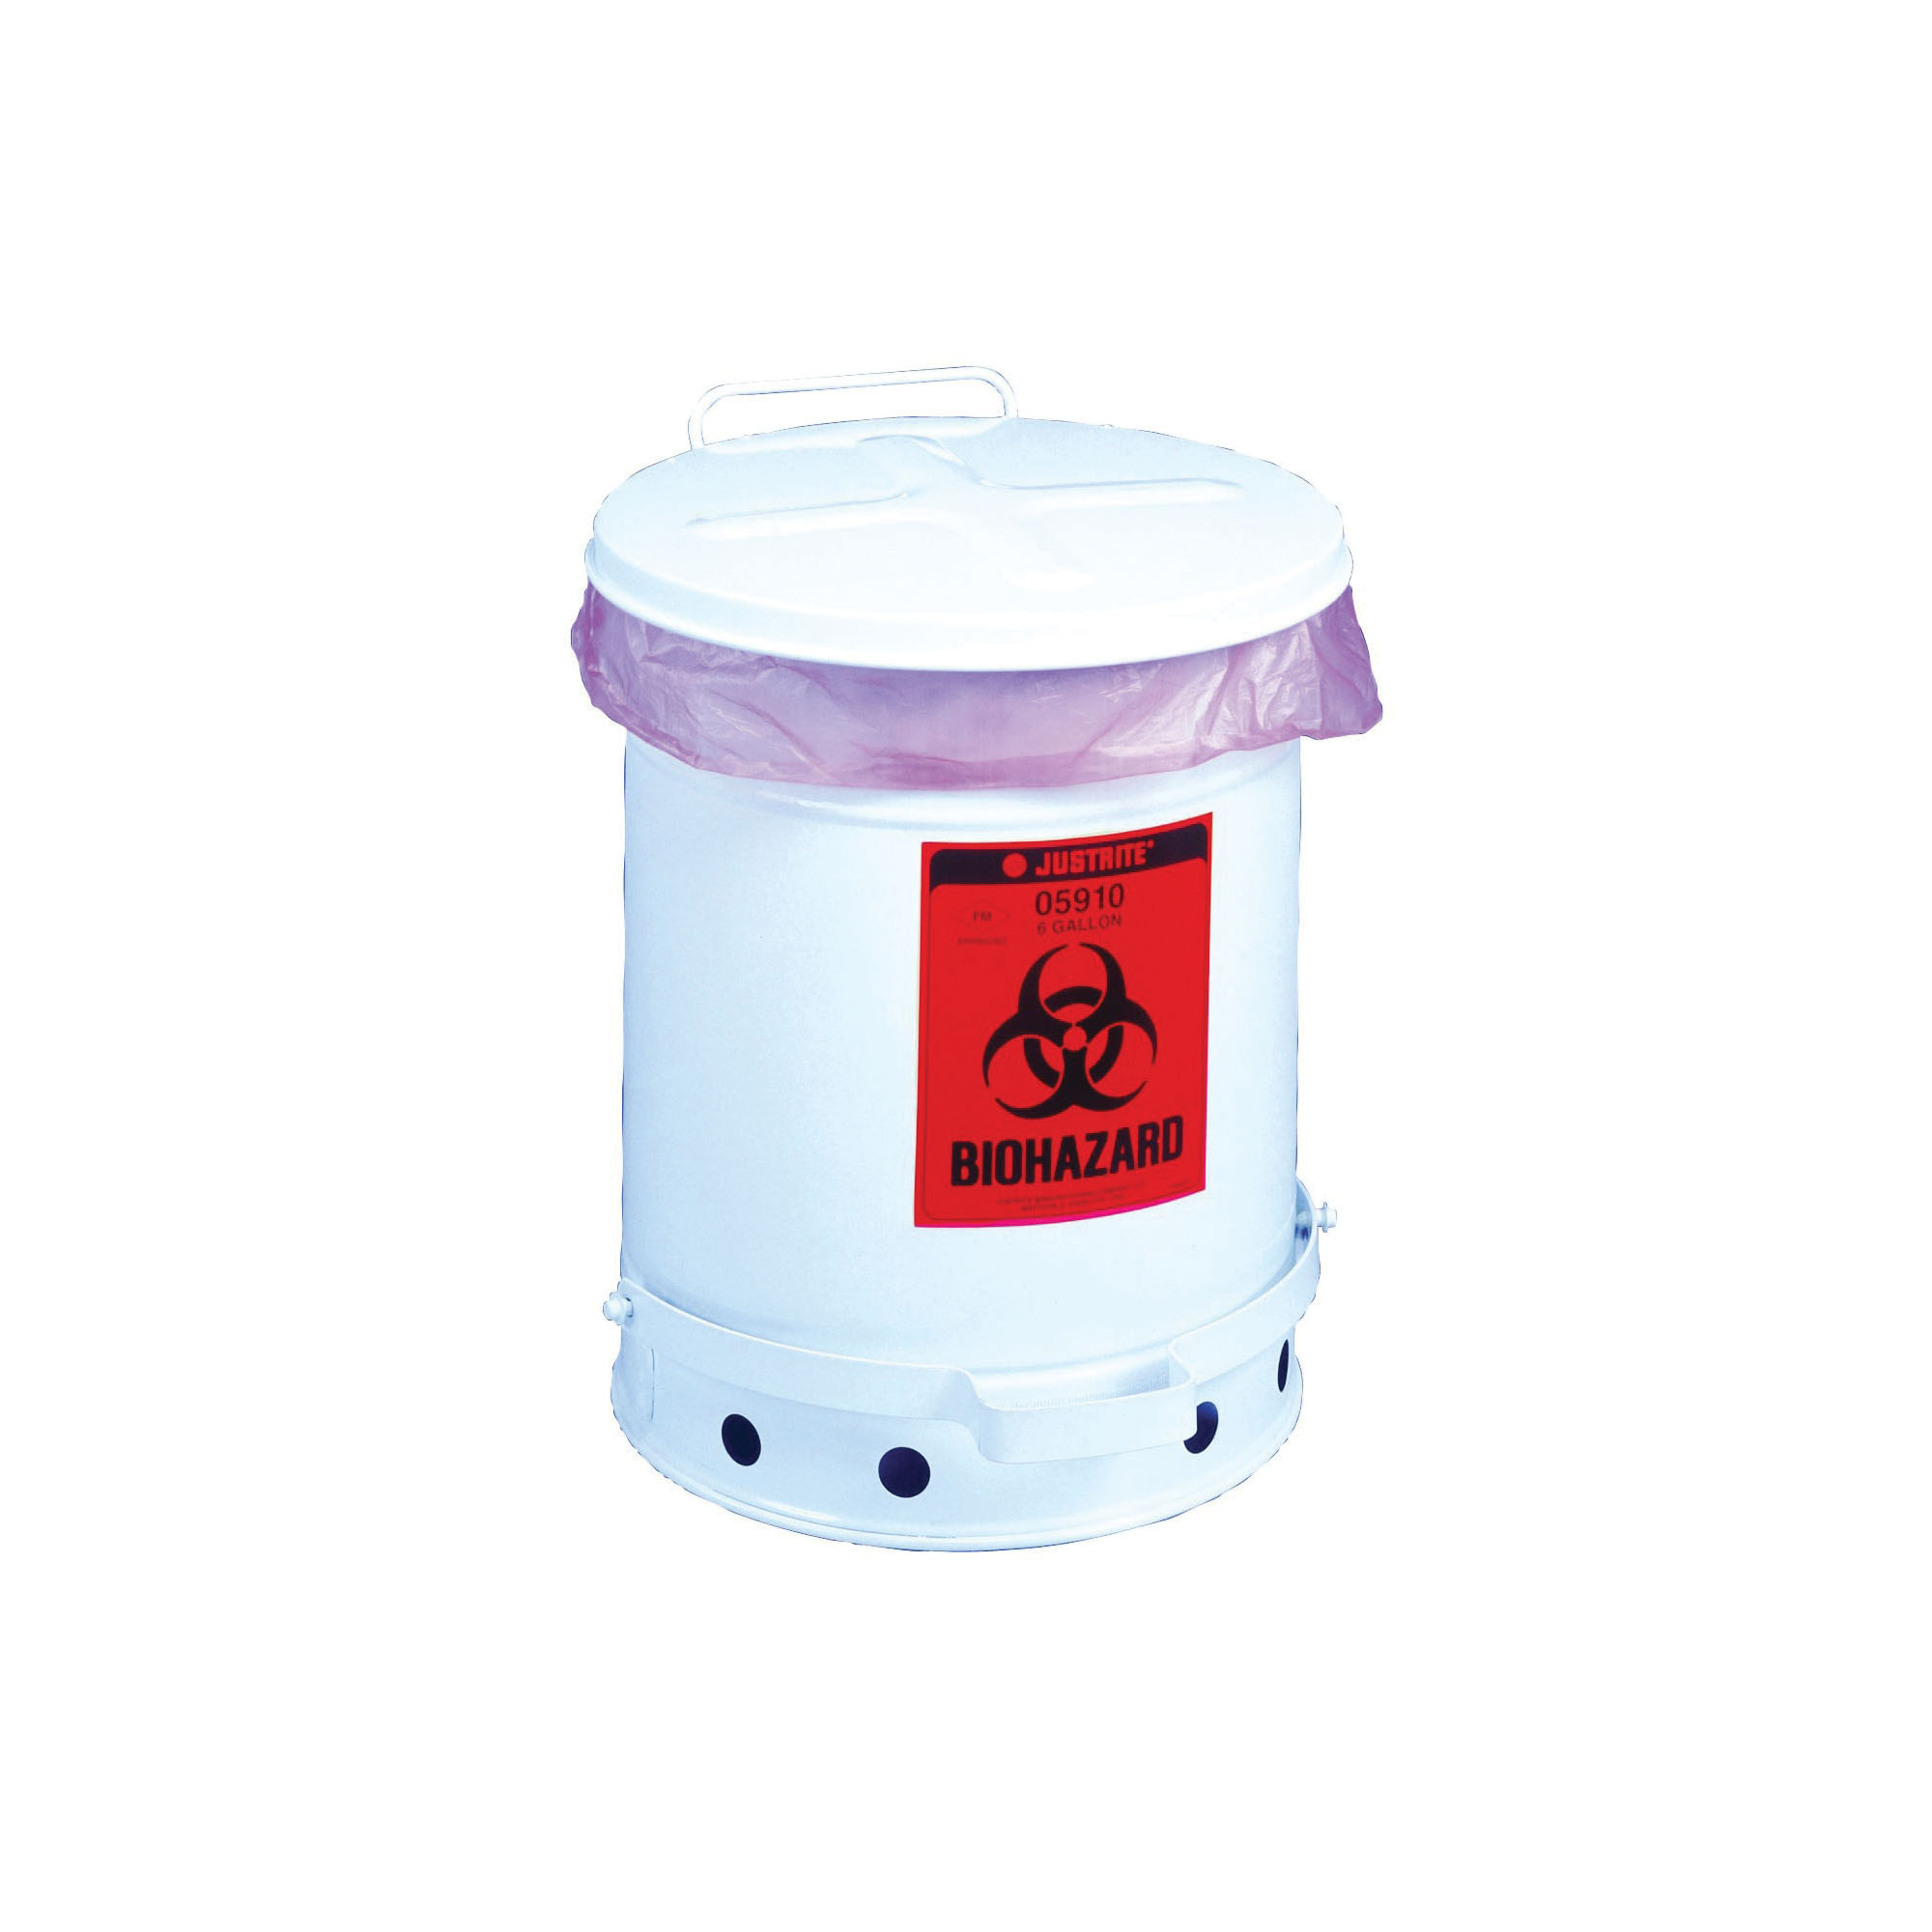 Justrite® 05930 Biohazard Waste Can, 10 gal Capacity, 13.937 in Dia, 18-1/4 in H, Galvanized Steel, White, FM Approved, TUV Approved, OSHA 29 CFR 1910.1030